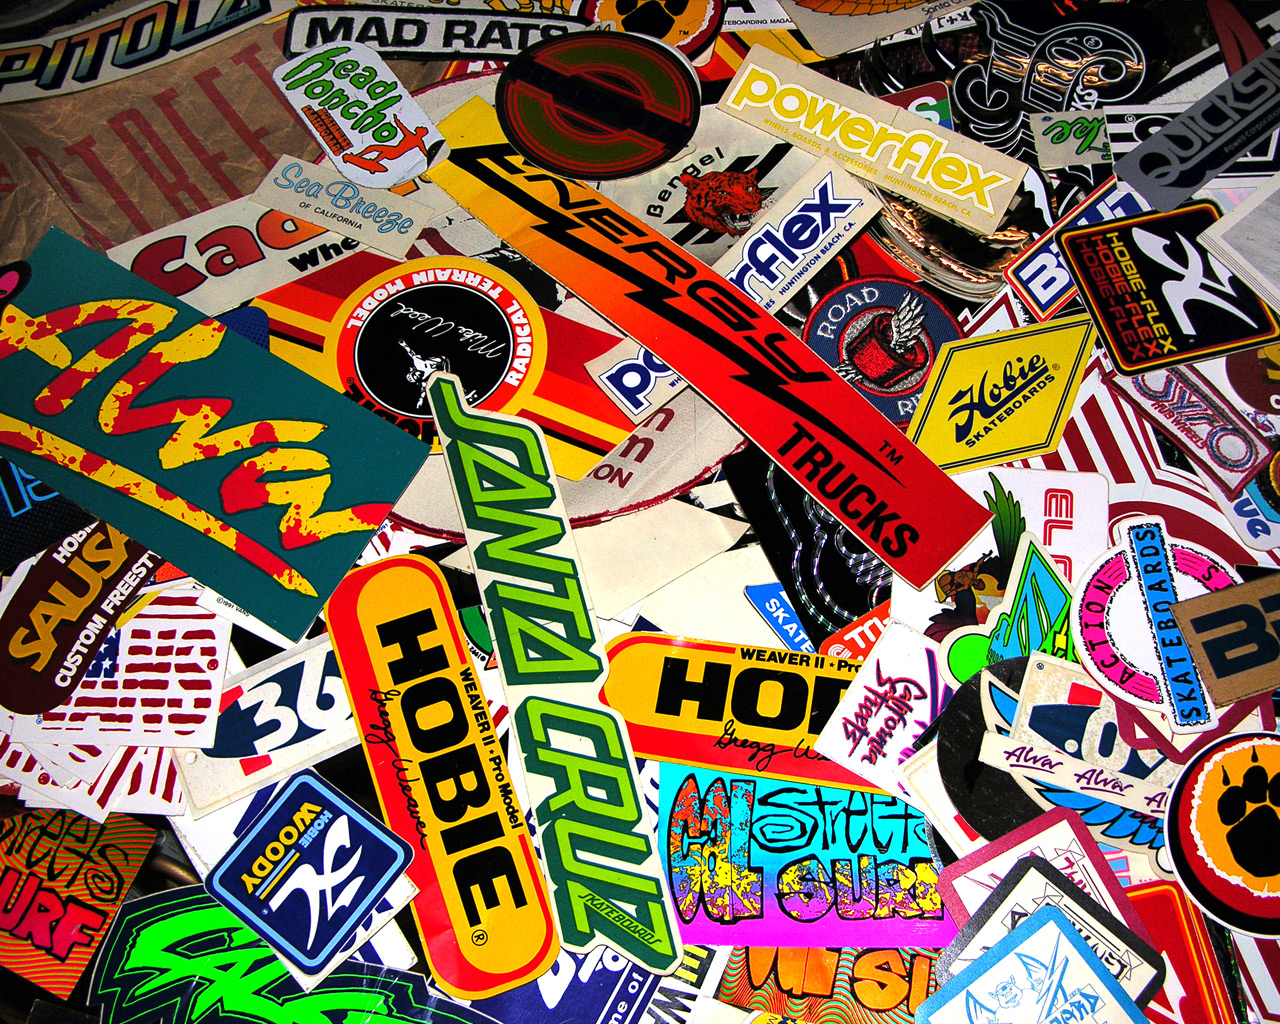 Big Time Old School A Sample of 70's and 80's Vintage Skateboard stickers.